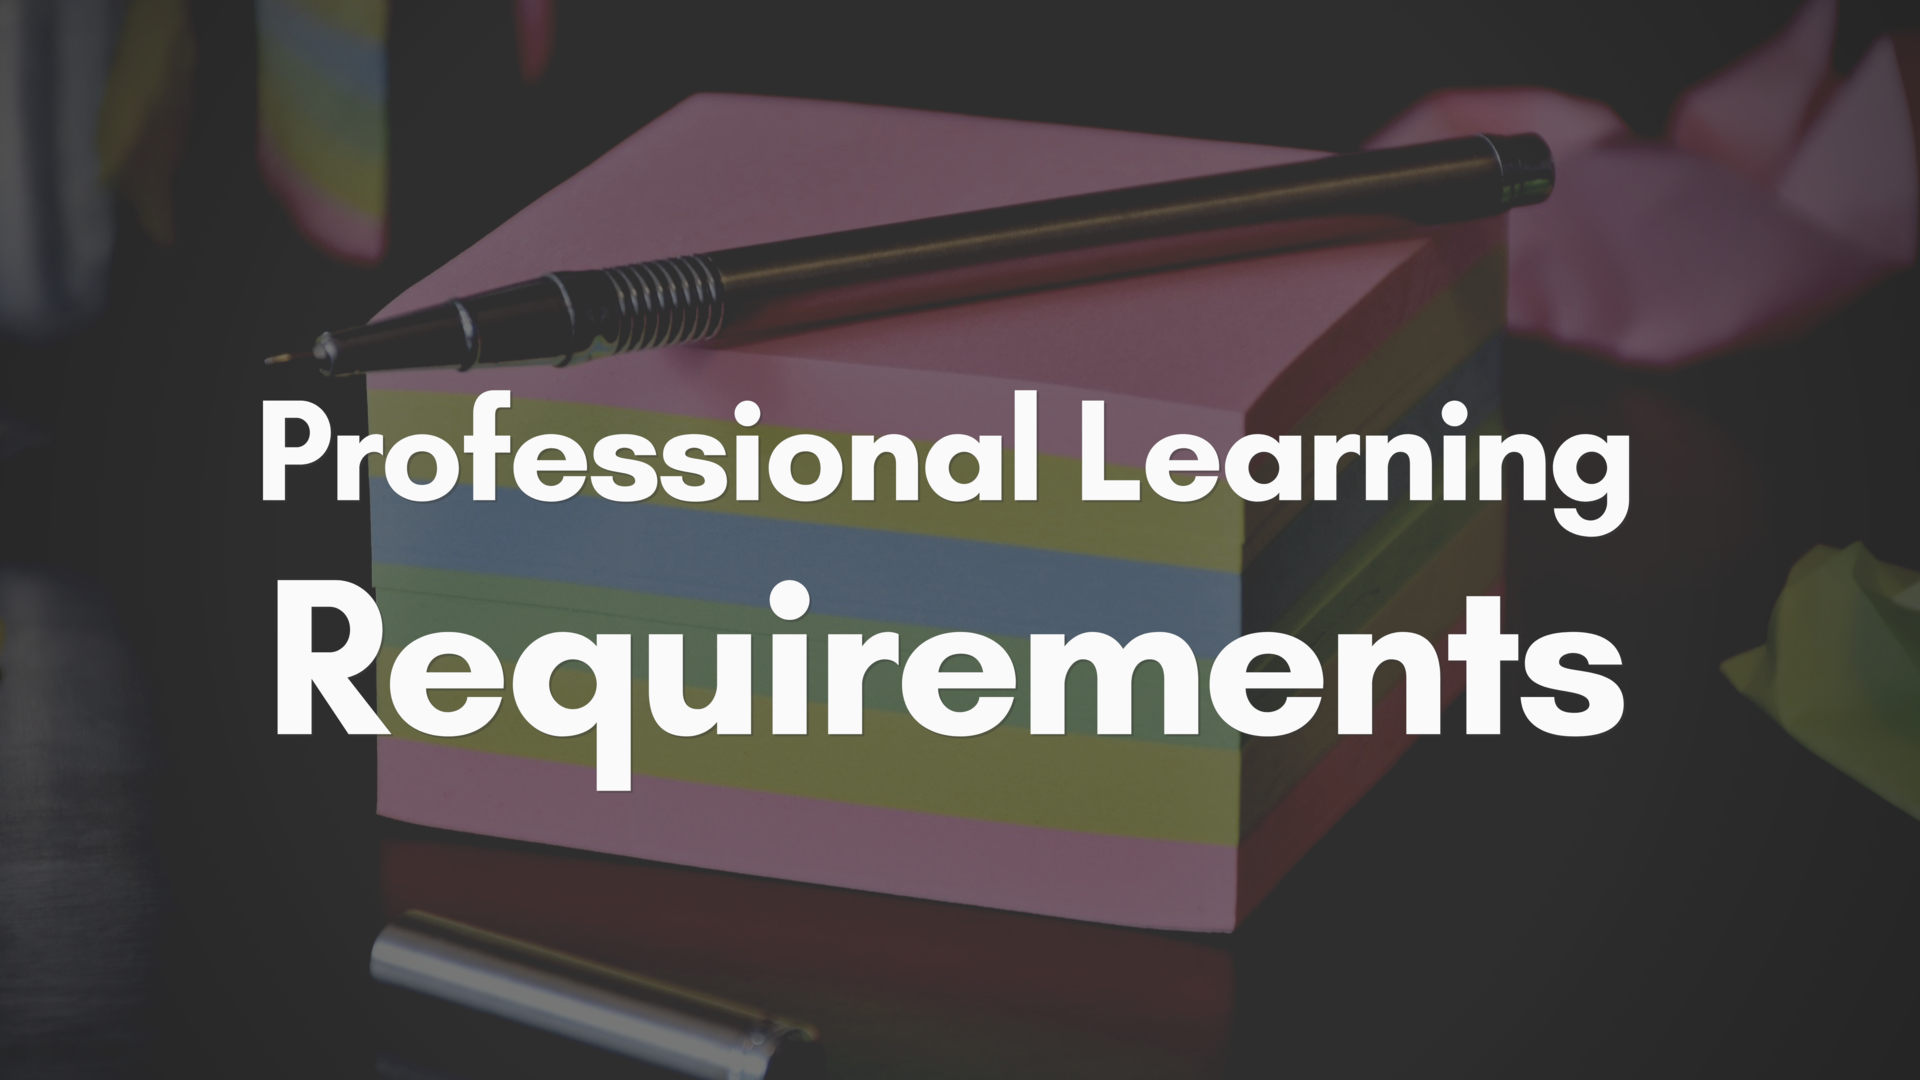 Professional Learning Requirements Link